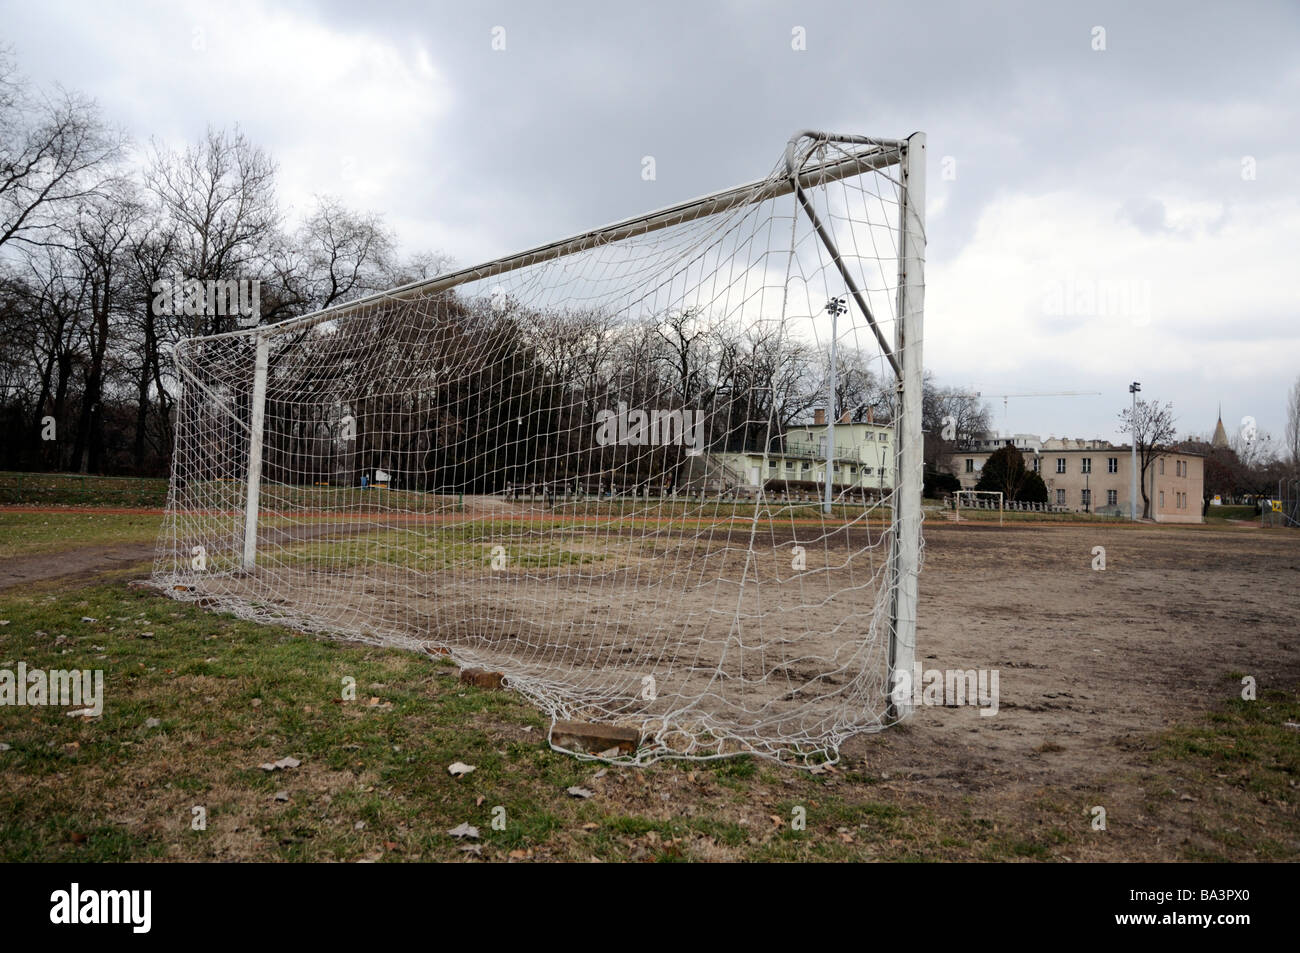 Football pitch in deserted sports ground, Budapest, Hungary. - Stock Image